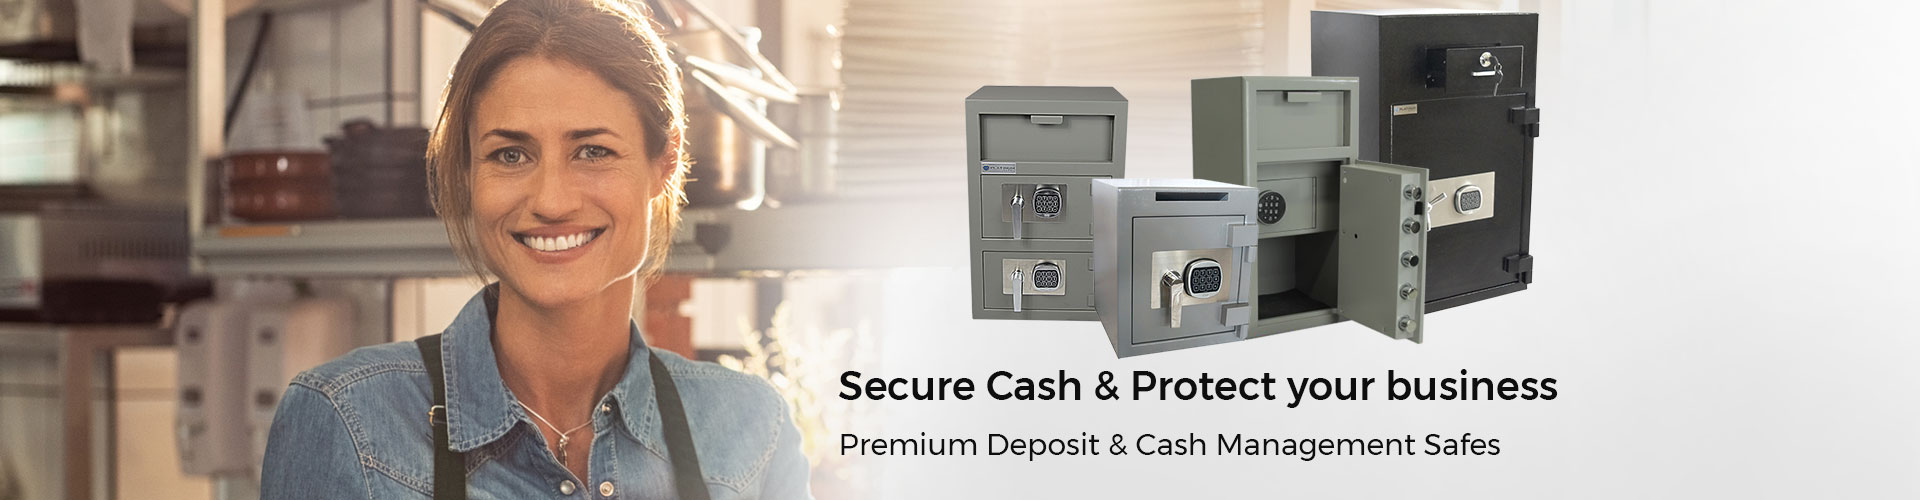 Secure cash and protect your business with premium deposit and cash management safes.